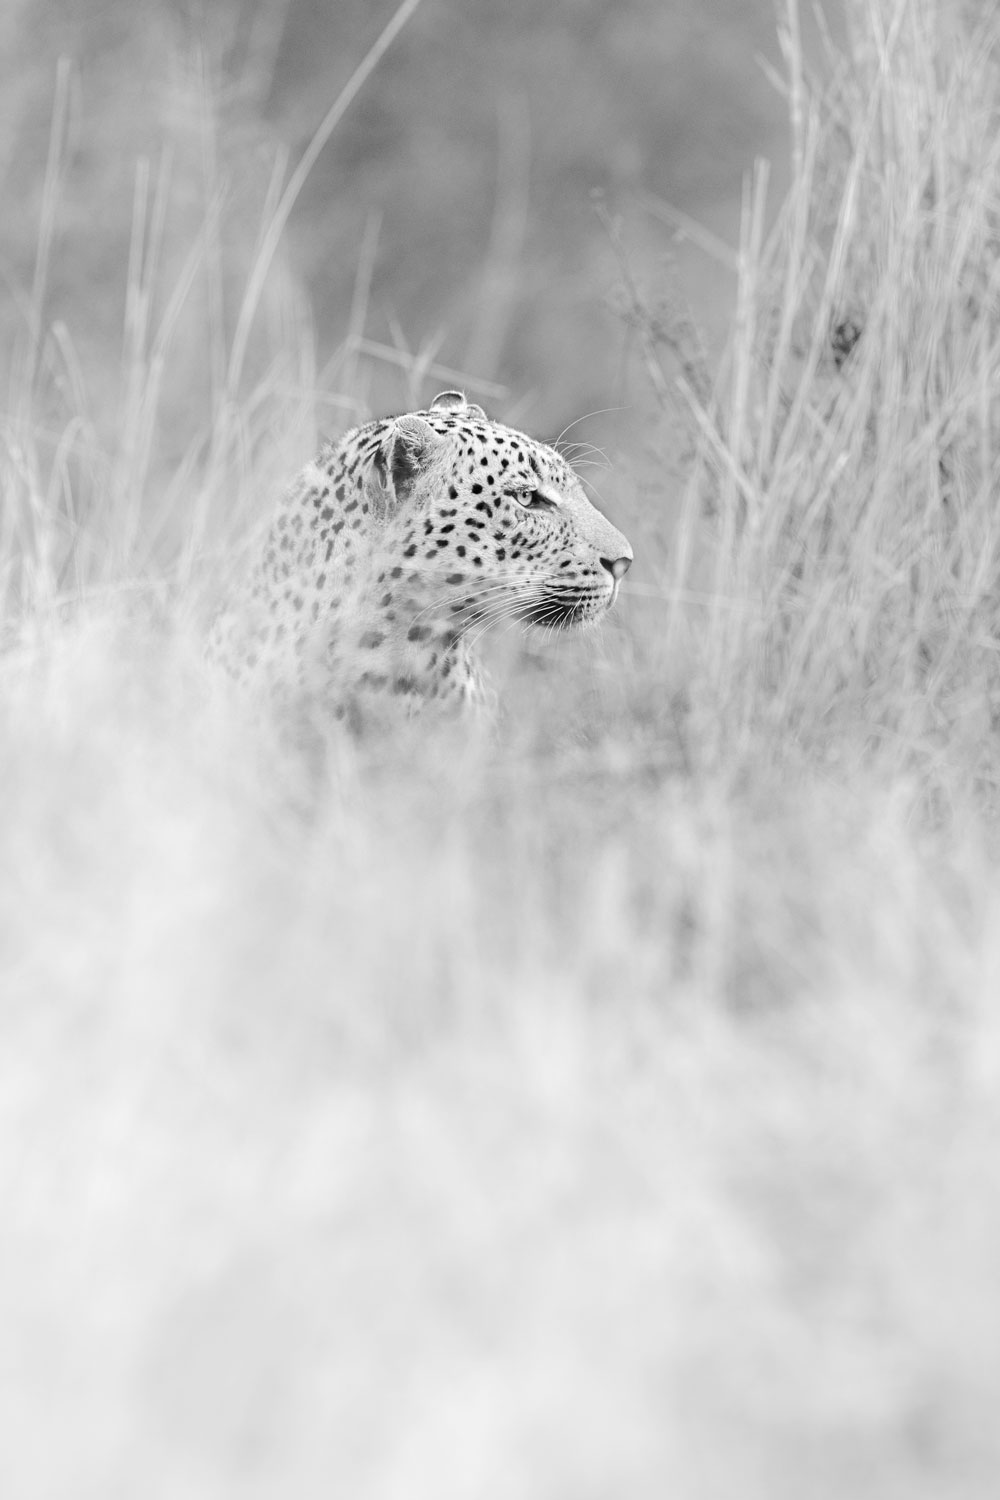 A leopard through long grass in black and white